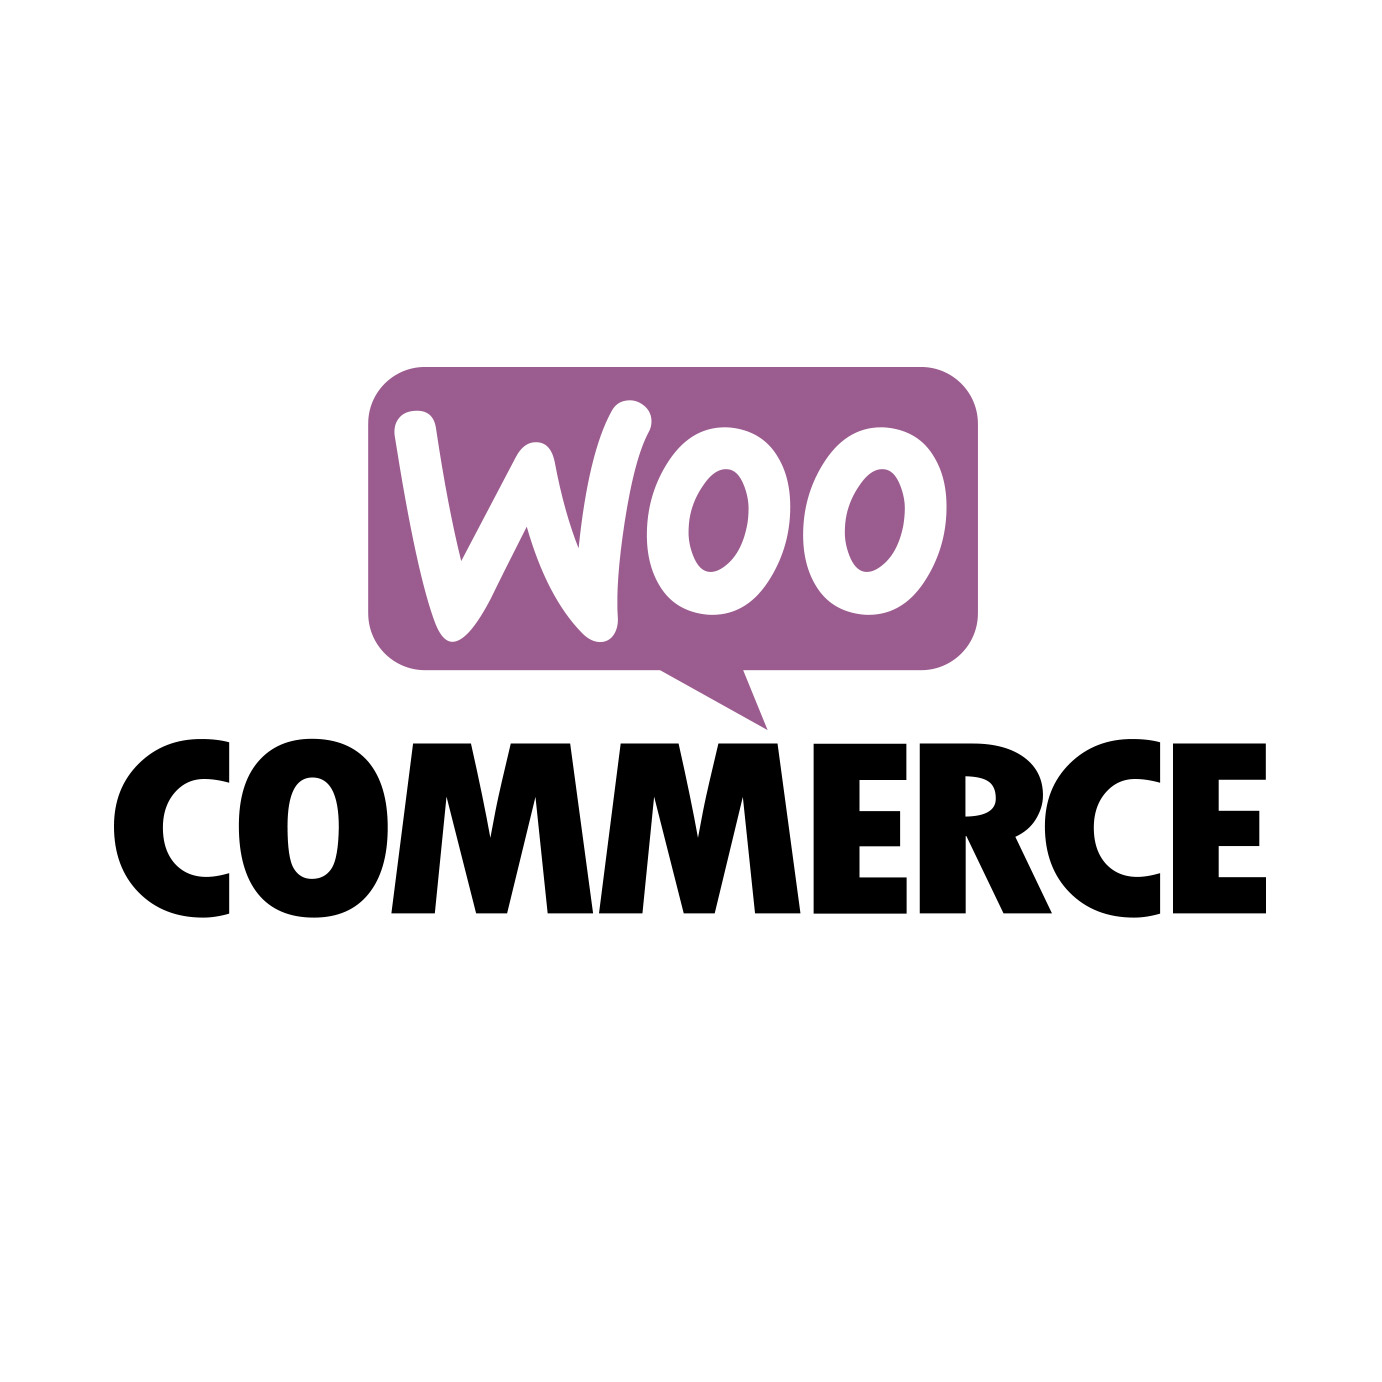 Woo Commerce | Auric